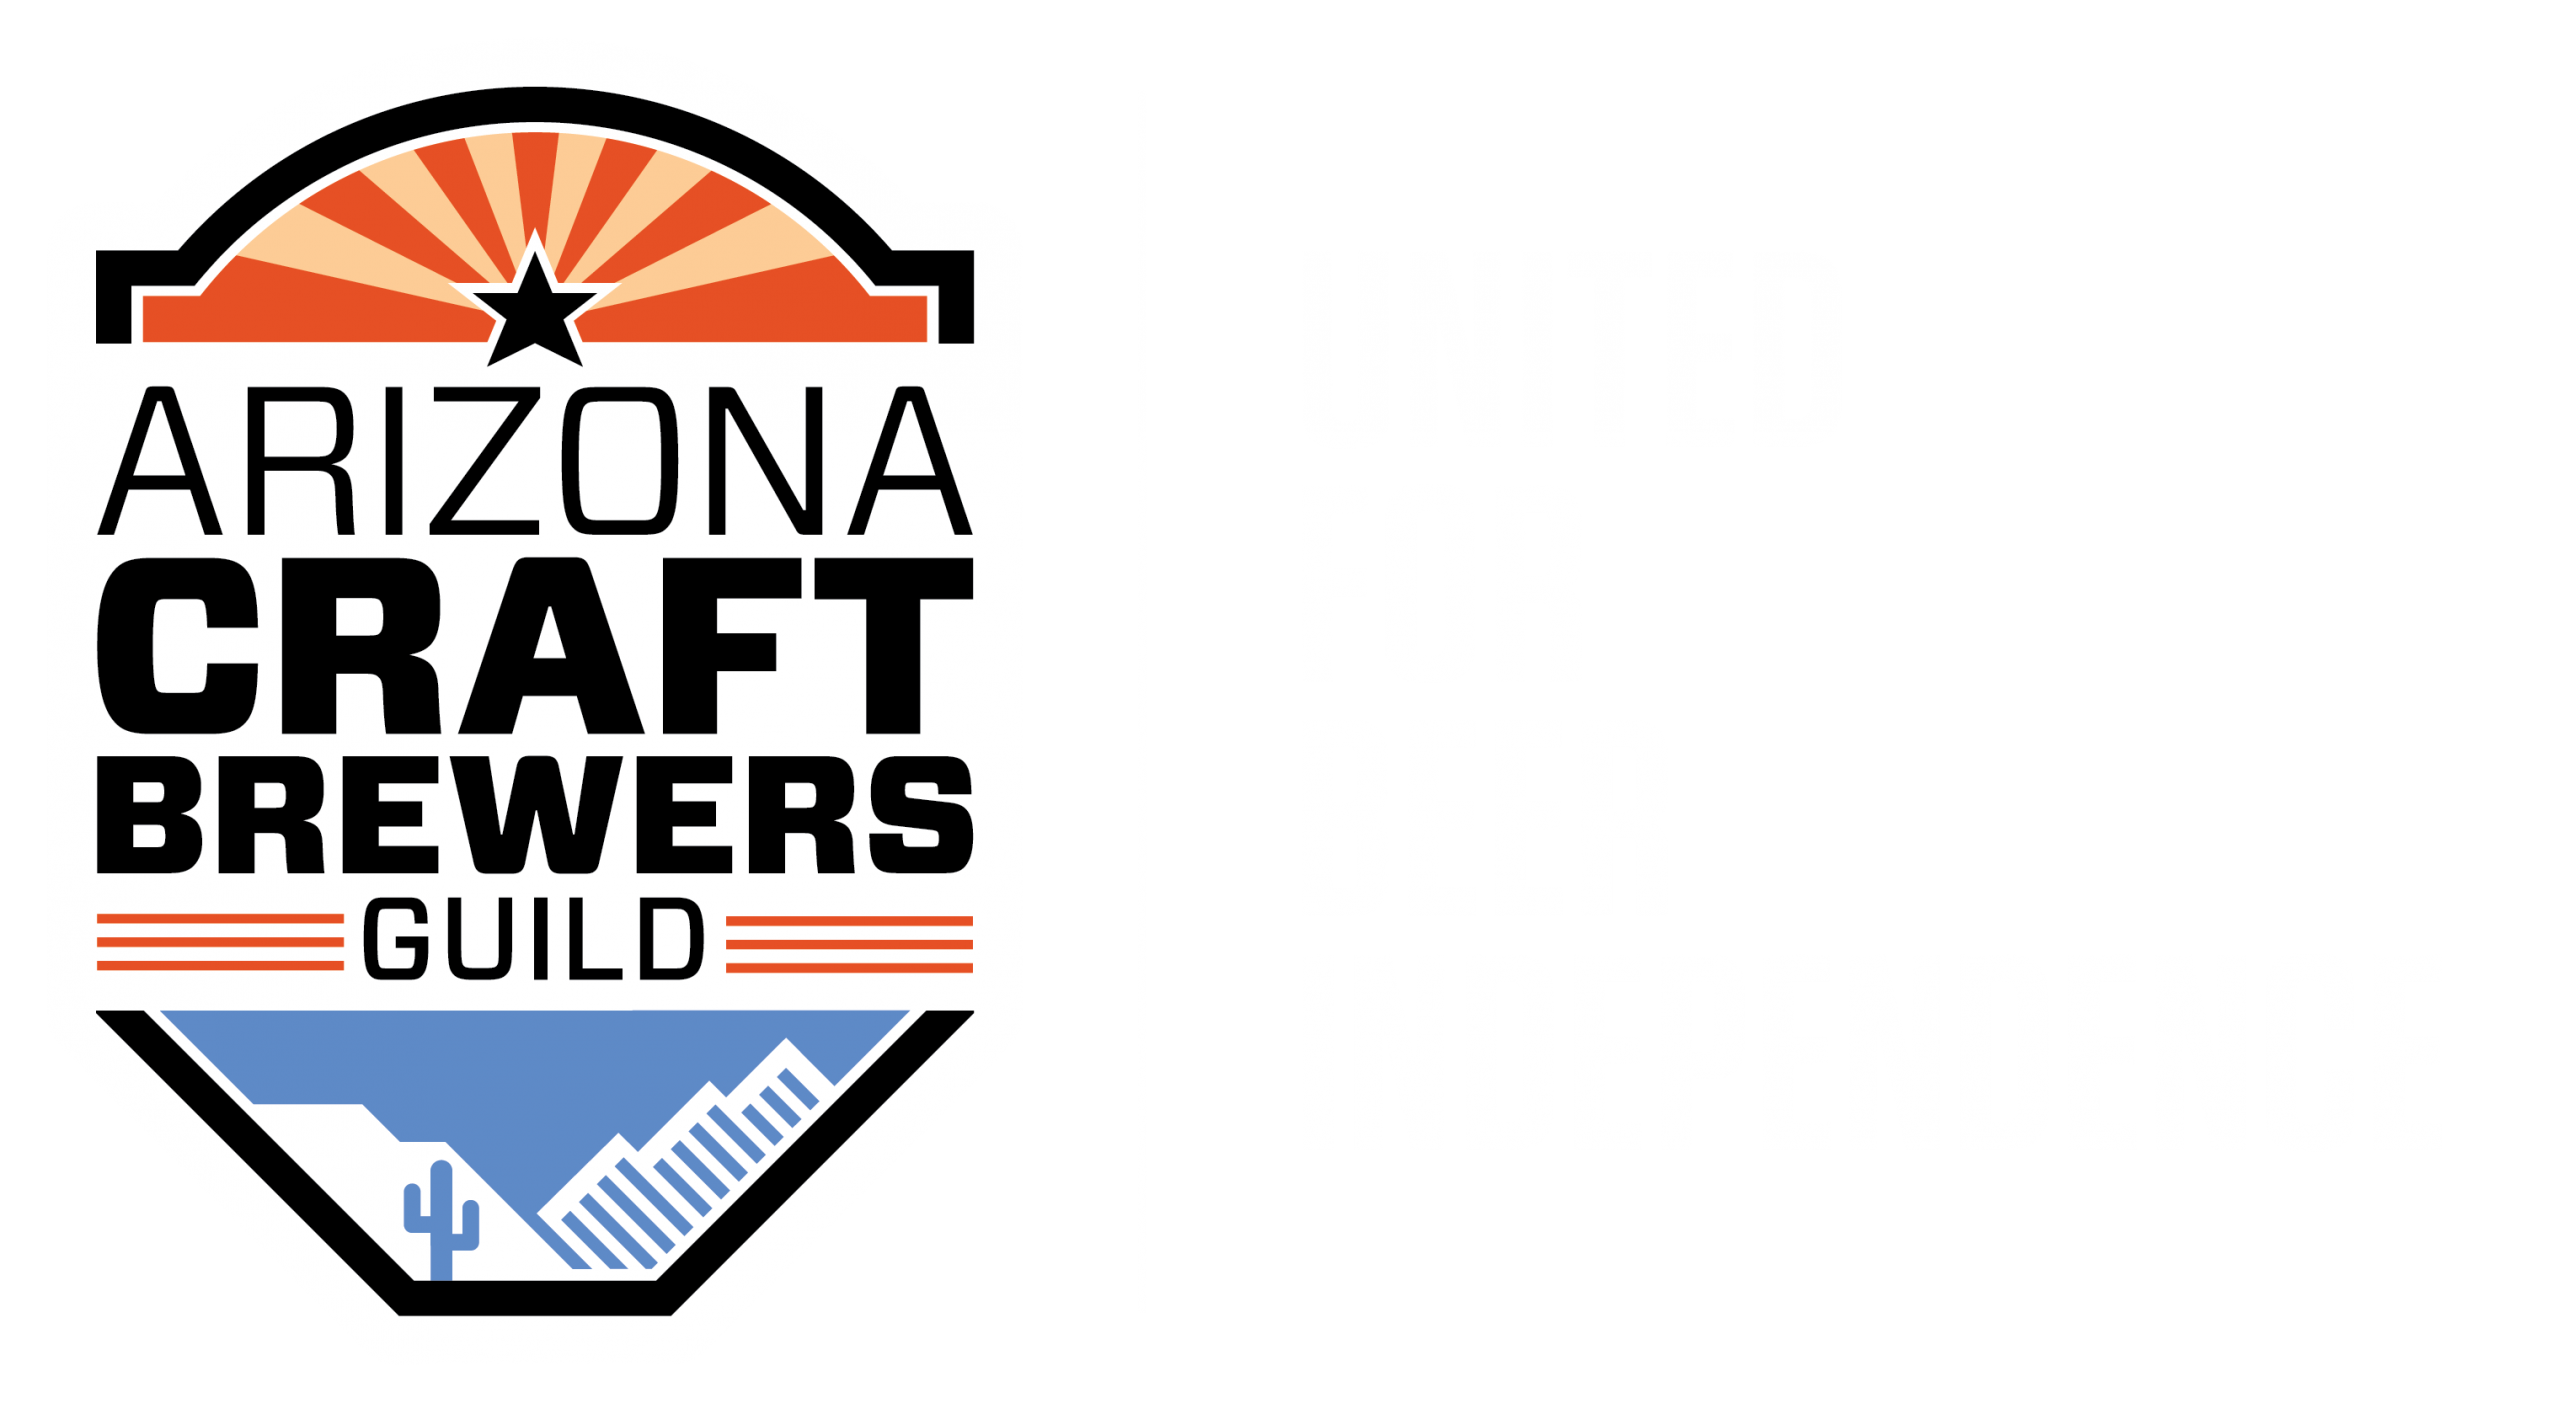 ARIZONA BREWERIES WINS BIG AT THE 2019 GREAT AMERICAN BEER FESTIVAL | Arizona Craft Brewers Guild